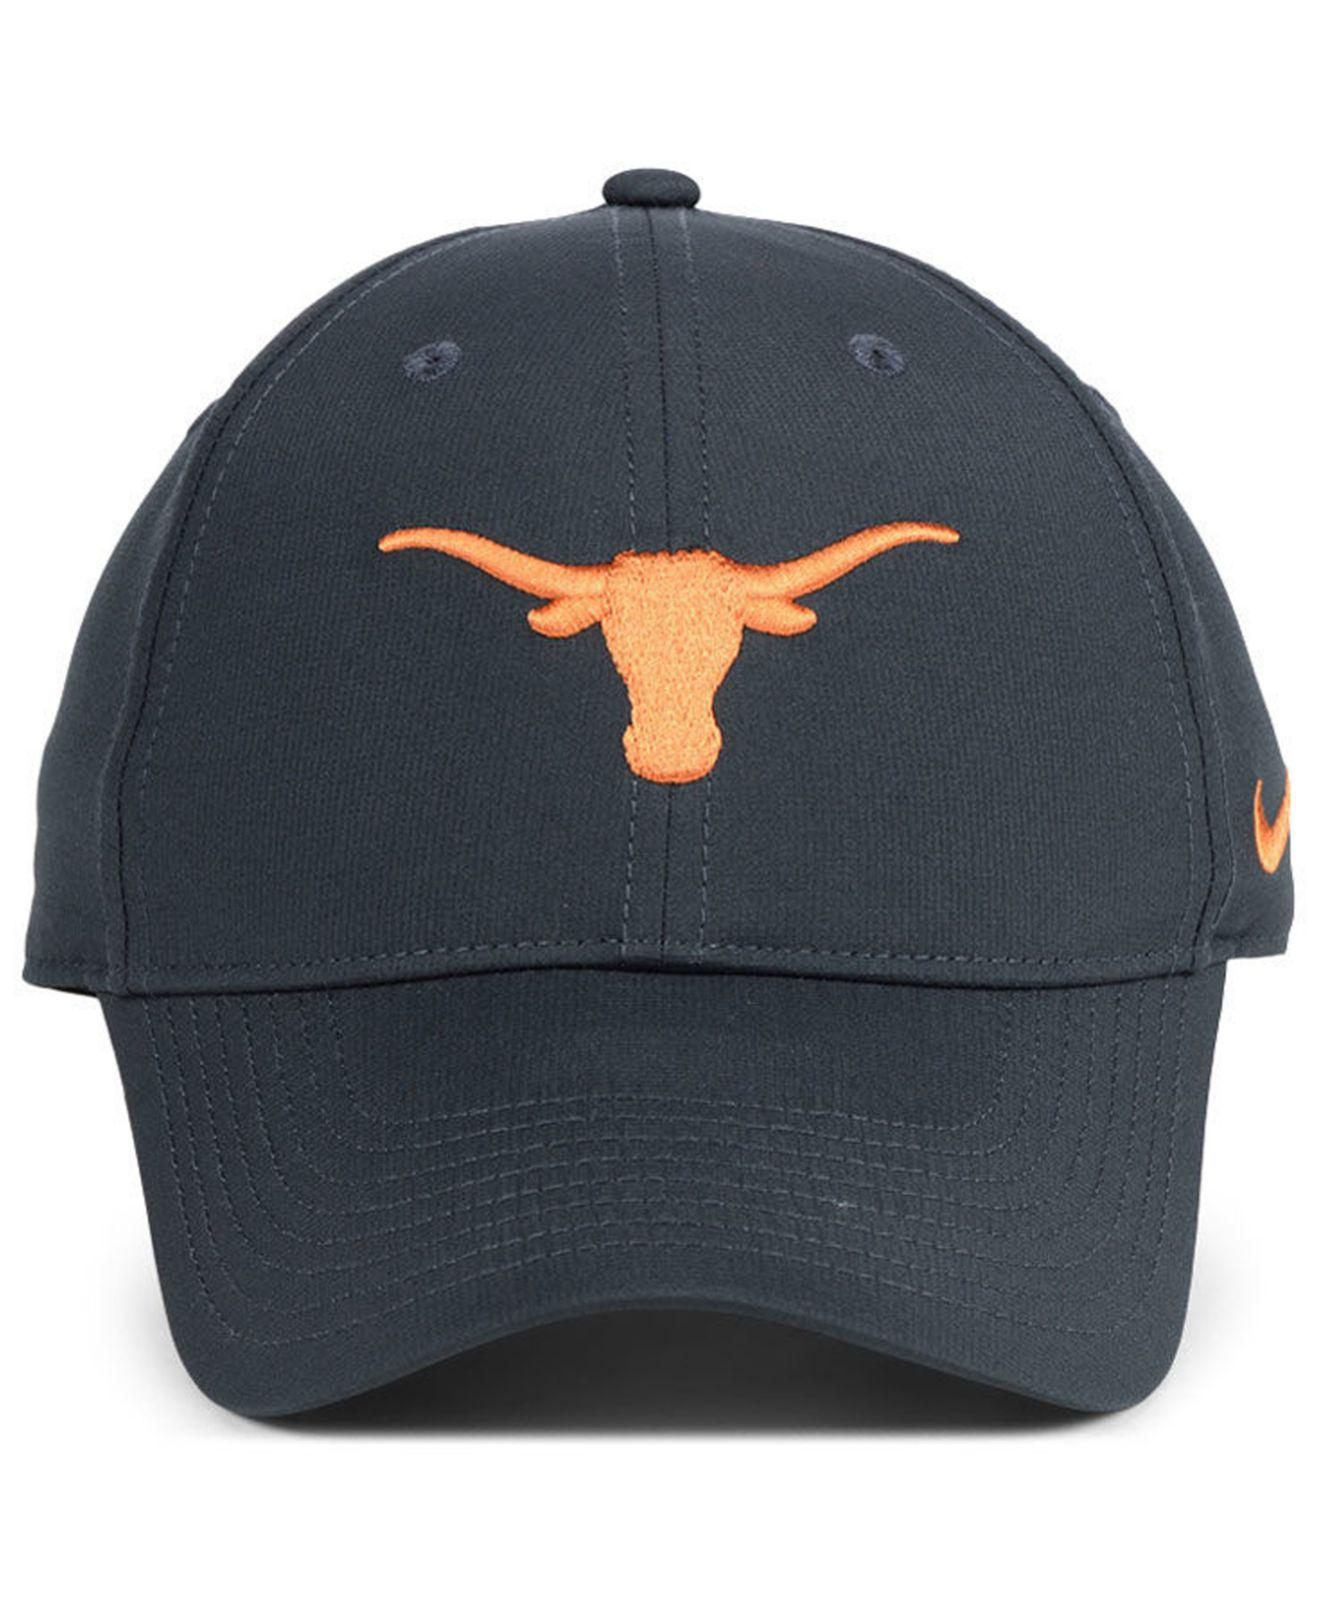 43039f9dfbf0 Lyst - Nike Texas Longhorns Dri-fit Adjustable Cap in Blue for Men